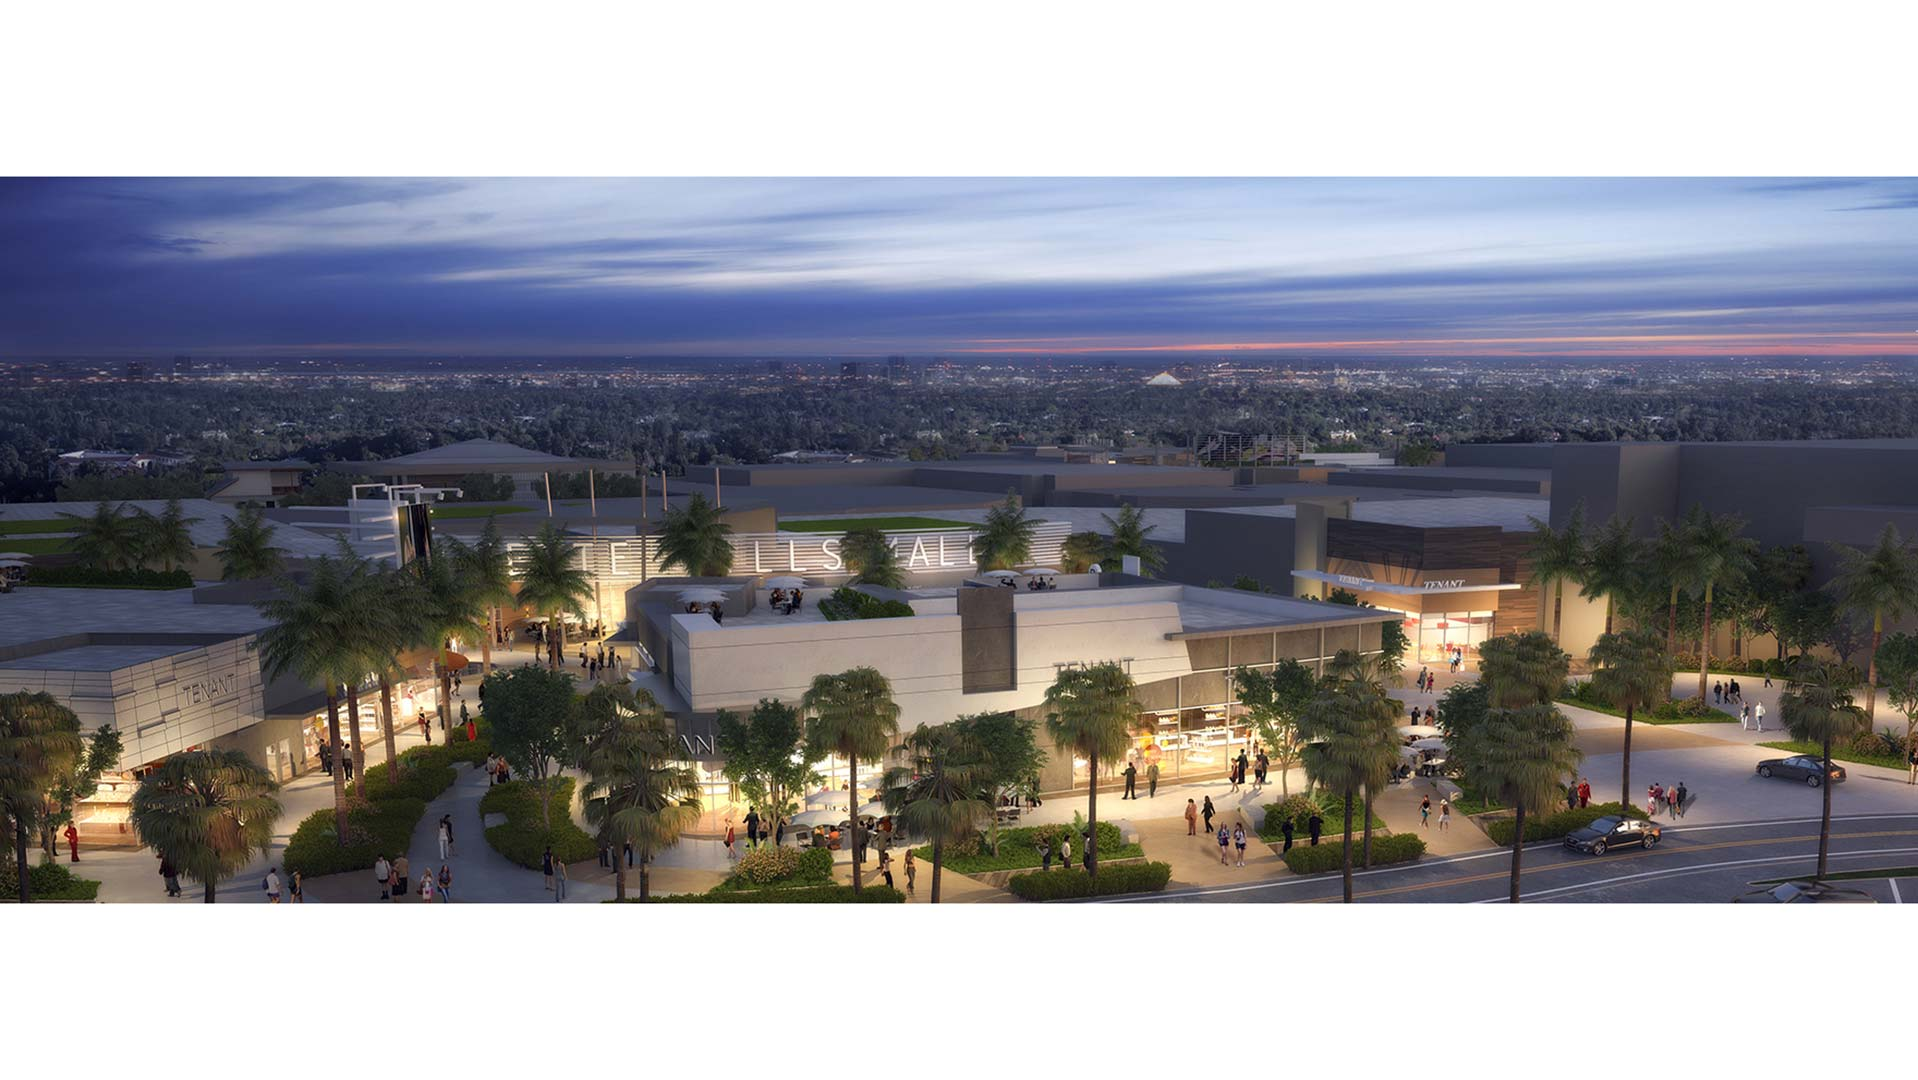 Puente Hills Mall-McKently_Malak_Architects_RE (6)